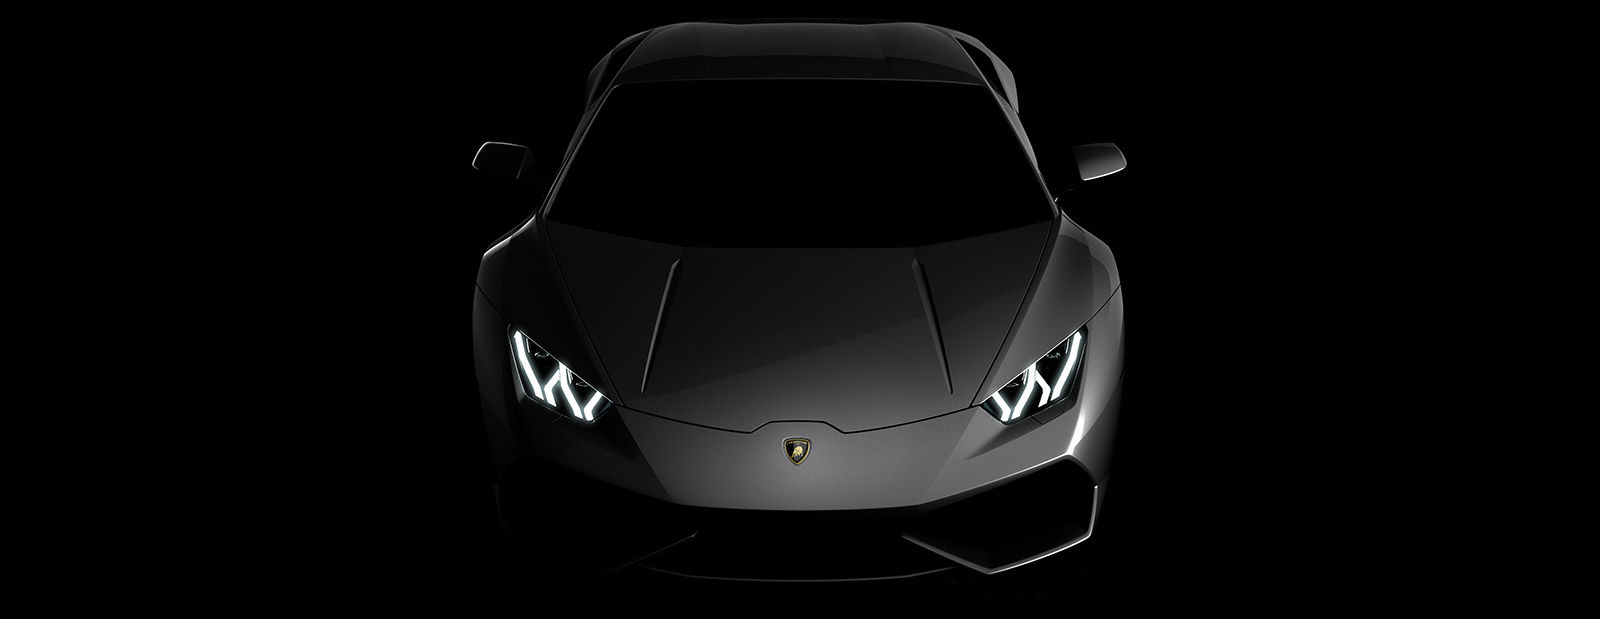 Colour a car - Fitted To A Lamborghini Huracan However It Looks Part Supercar Part Stealth Fighter For A Car This Outlandish It S The Perfect